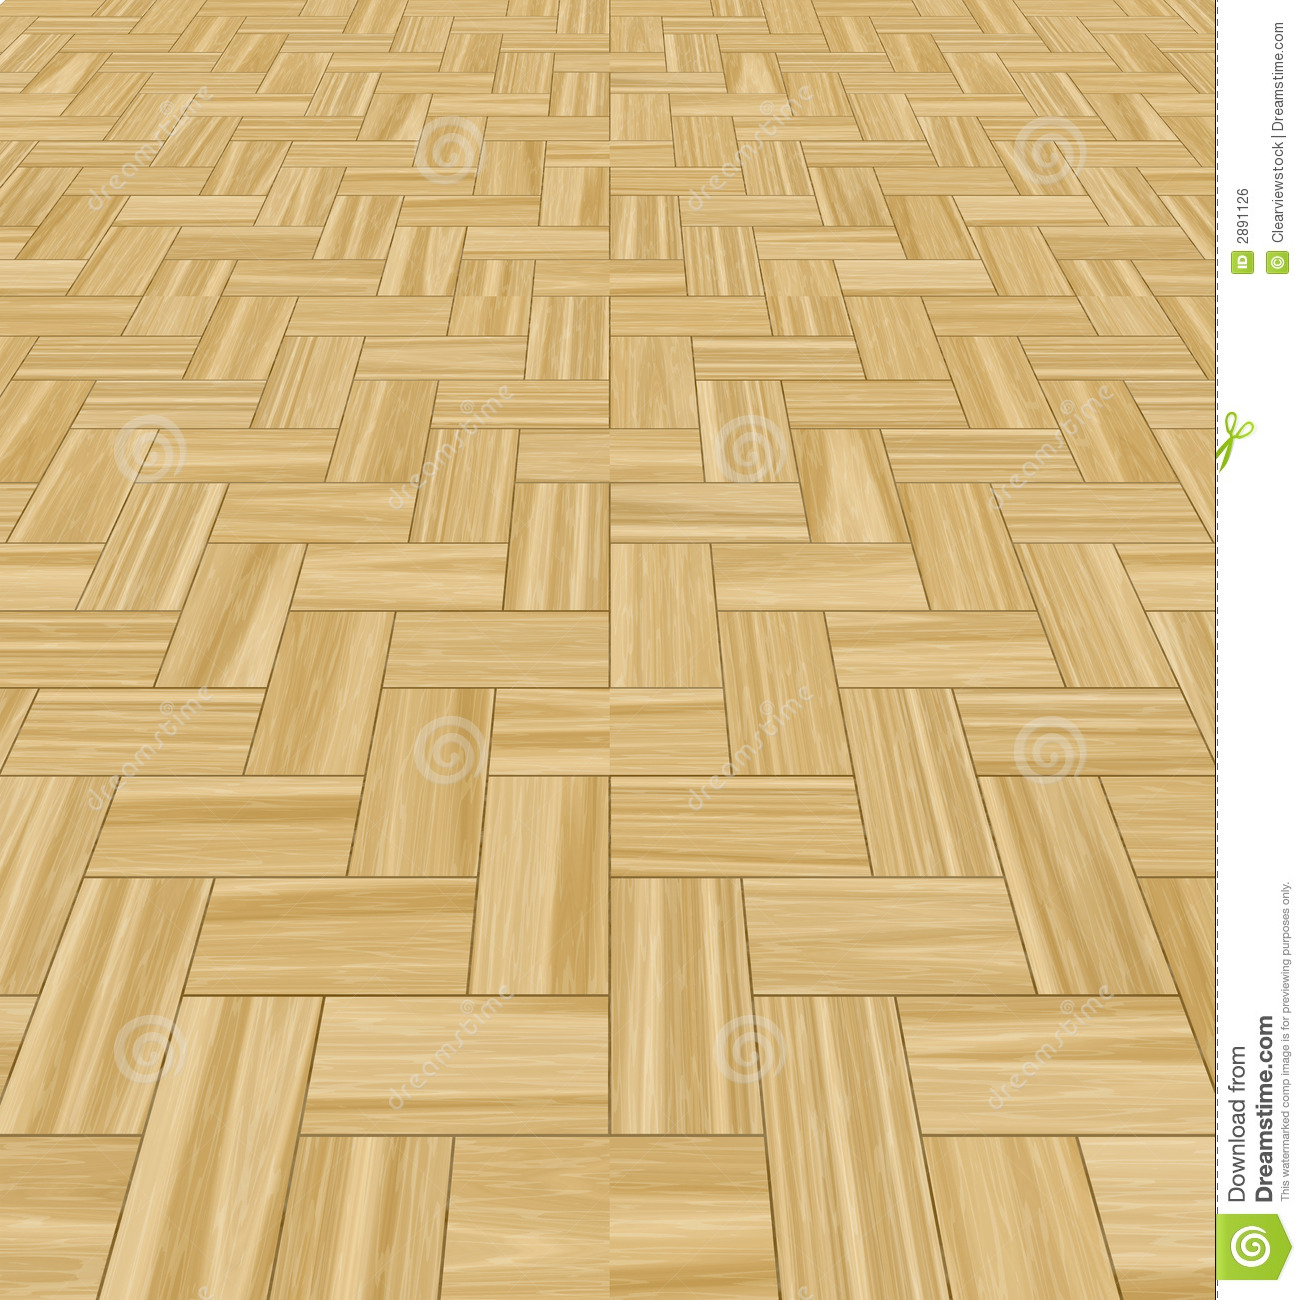 Parquetry Wood Floor Tiles Royalty Free Stock Image - Image: 2891126